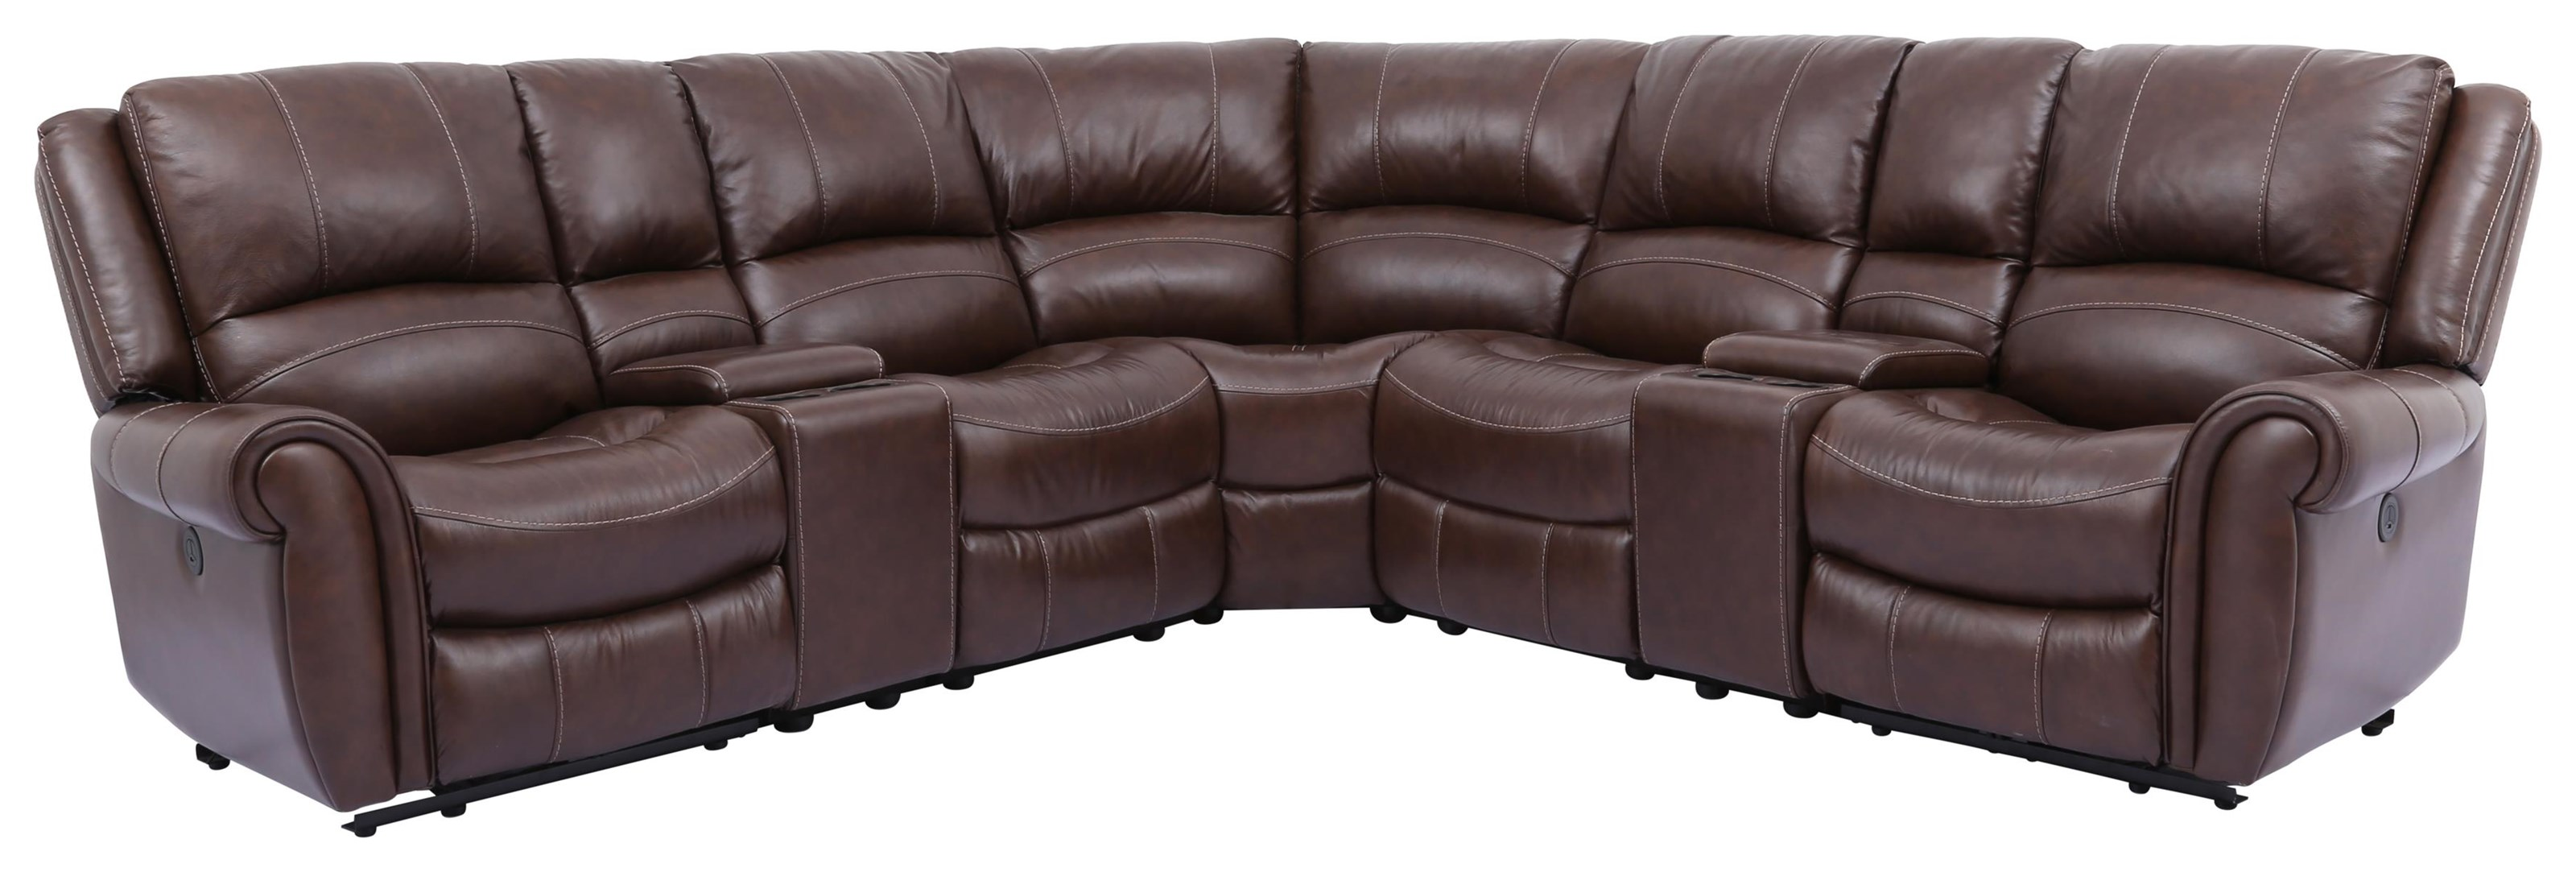 Cheers Rowan Leather 7 Piece Power Reclining Sectional